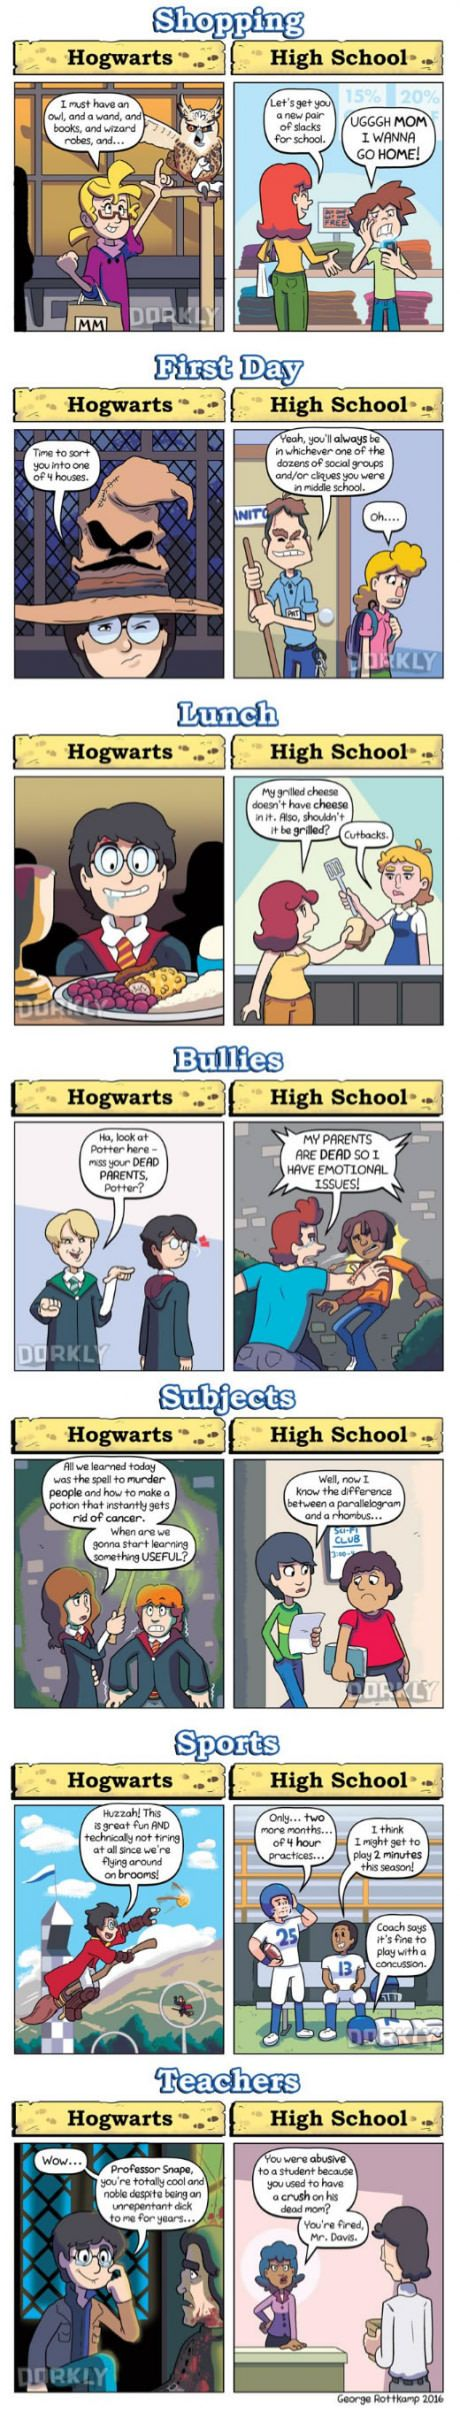 Harry Potter Schools vs. Real High School